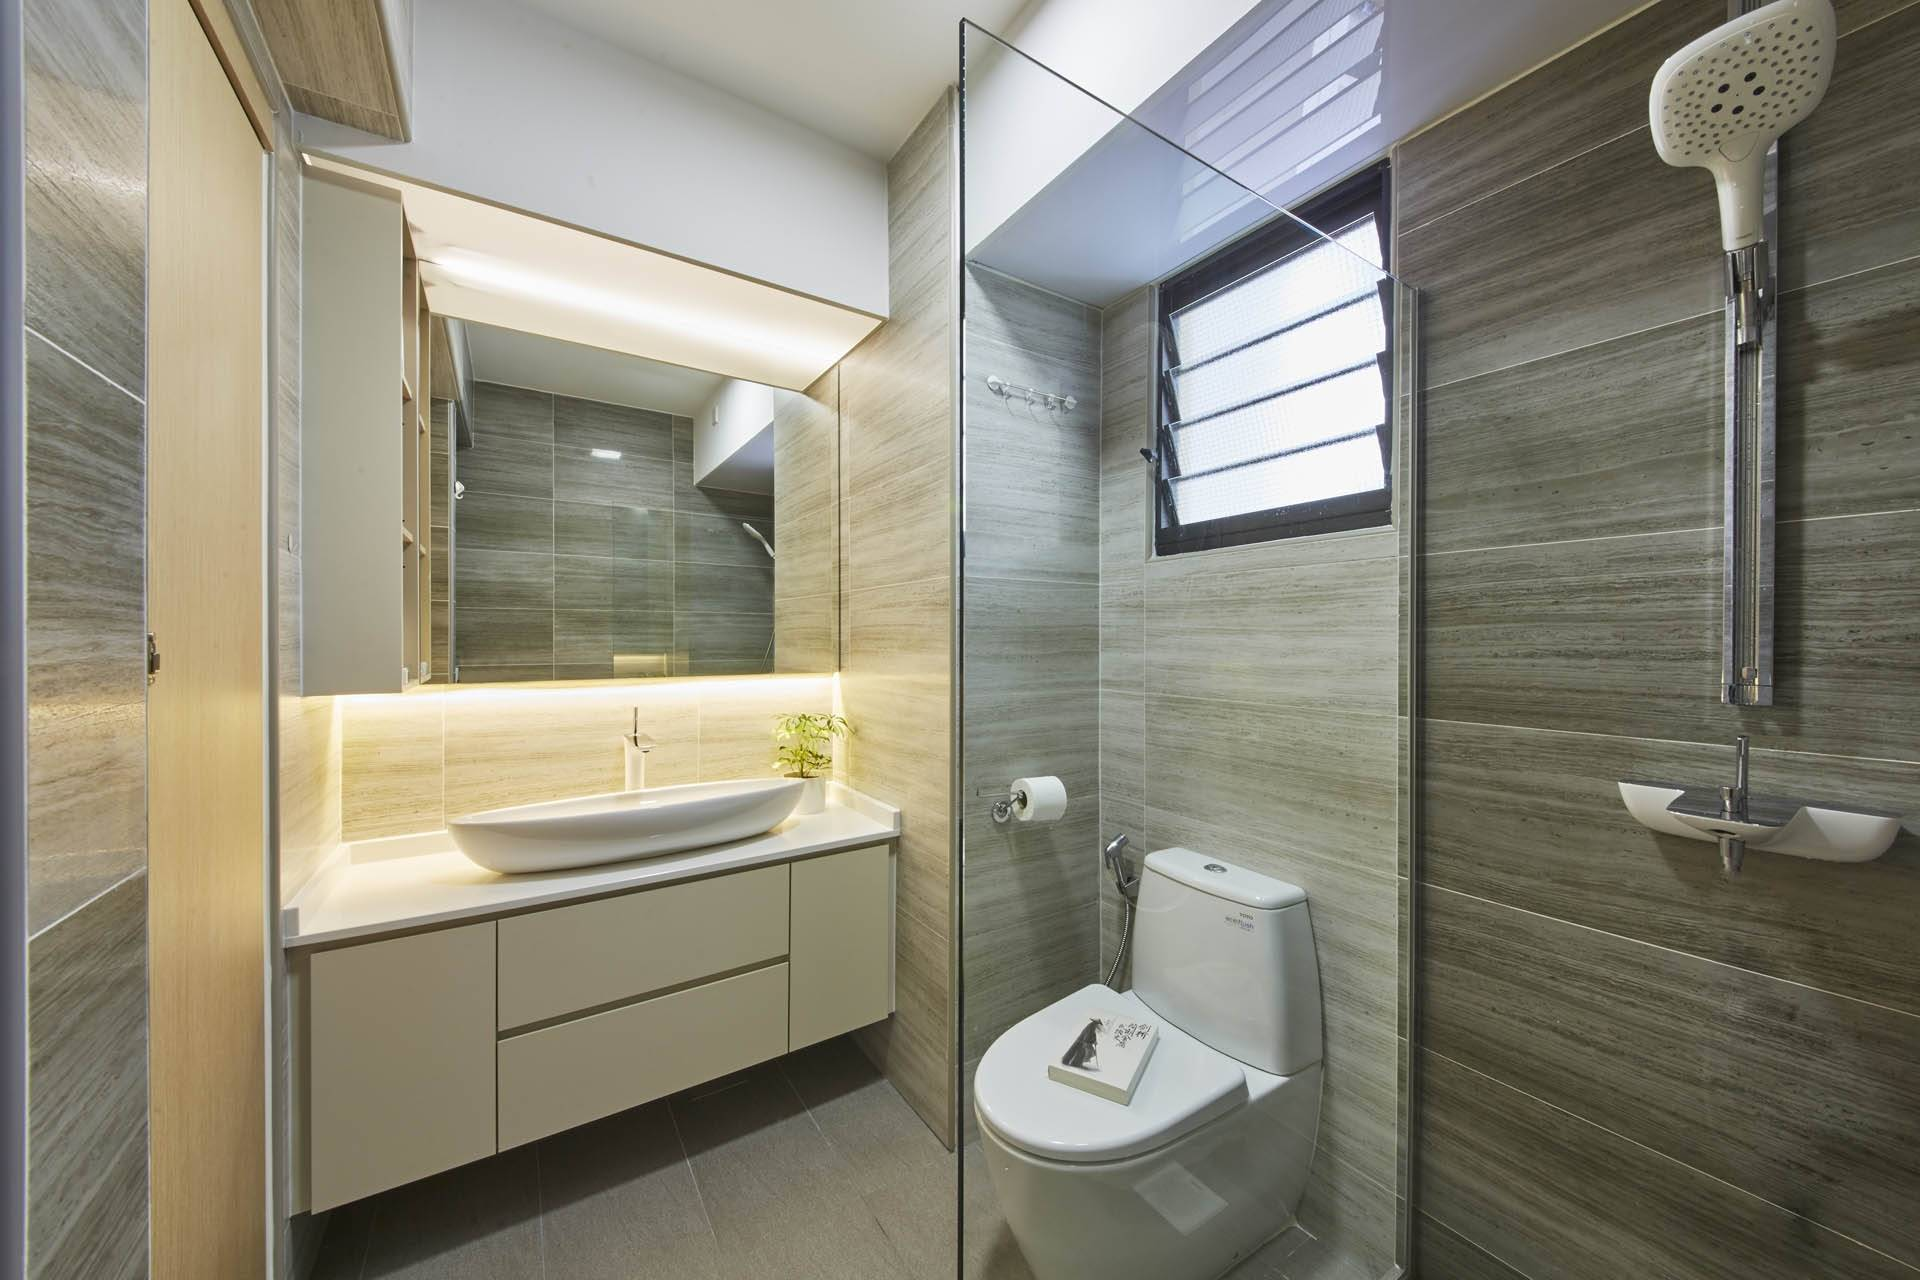 Hdb bathroom design for Bathroom designs